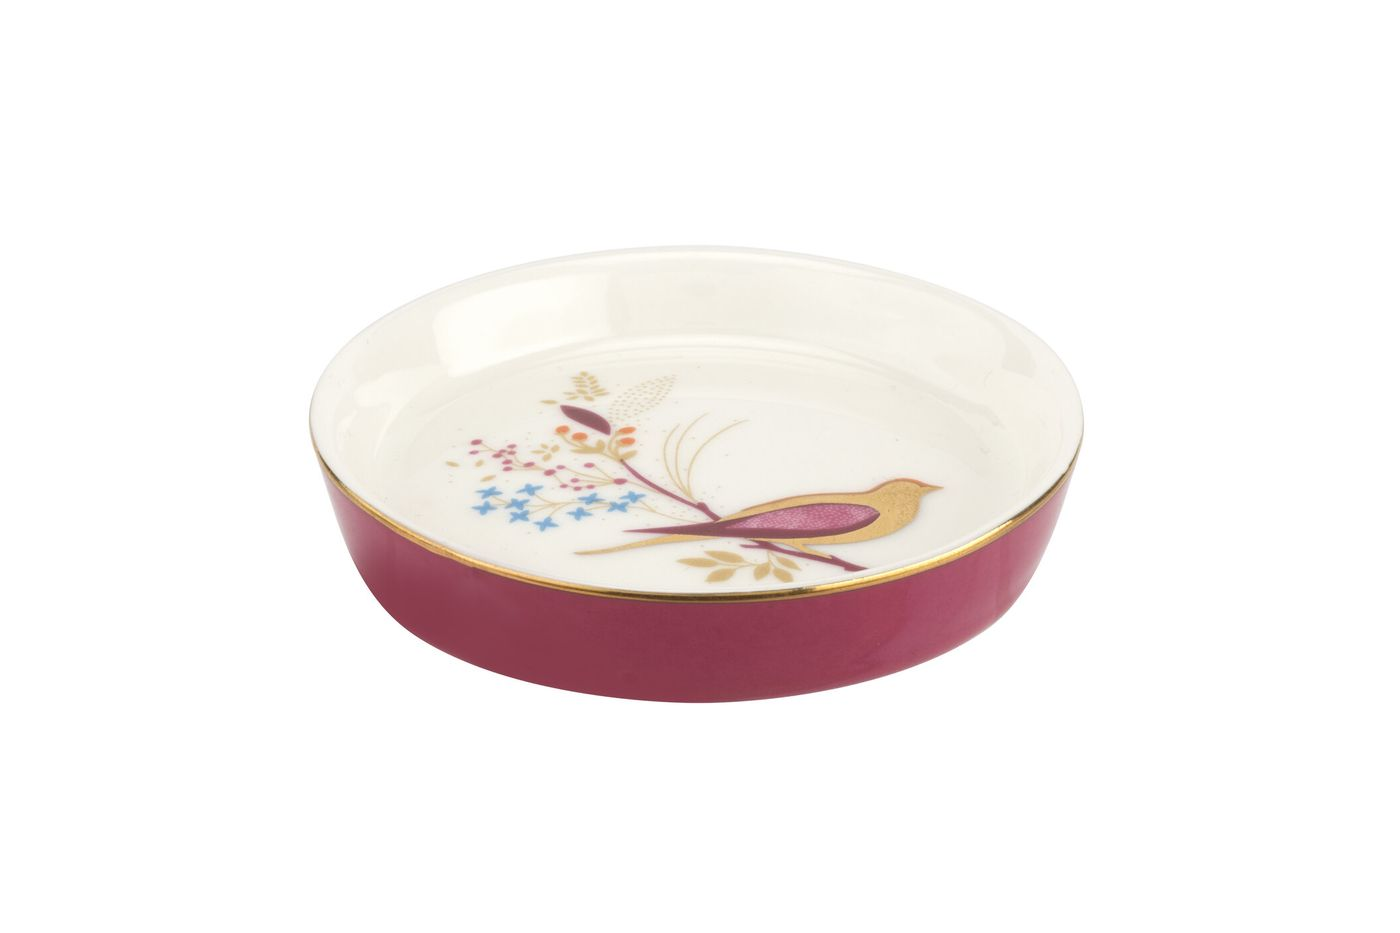 Sara Miller London for Portmeirion Chelsea Collection Small Dish Pink 7.5cm thumb 1